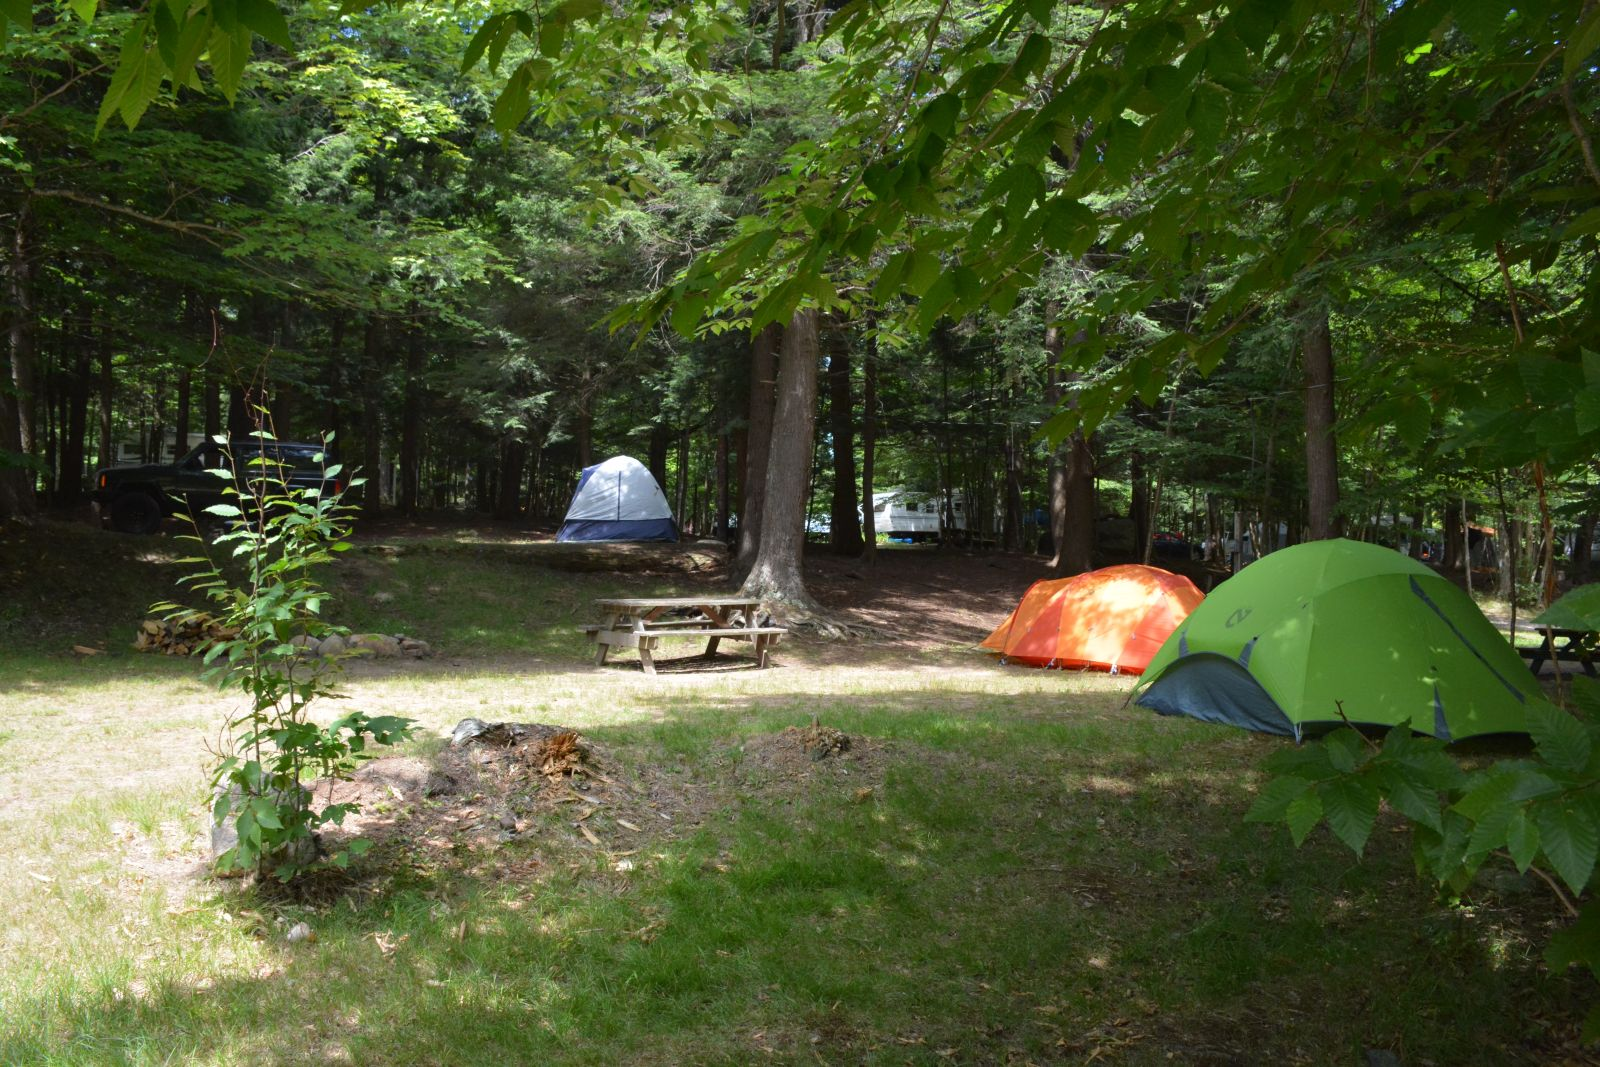 Each campsite has electricity and water hook-ups as well as a fire area and picnic table.  Some sites have full hook-ups or a dumping station is available.